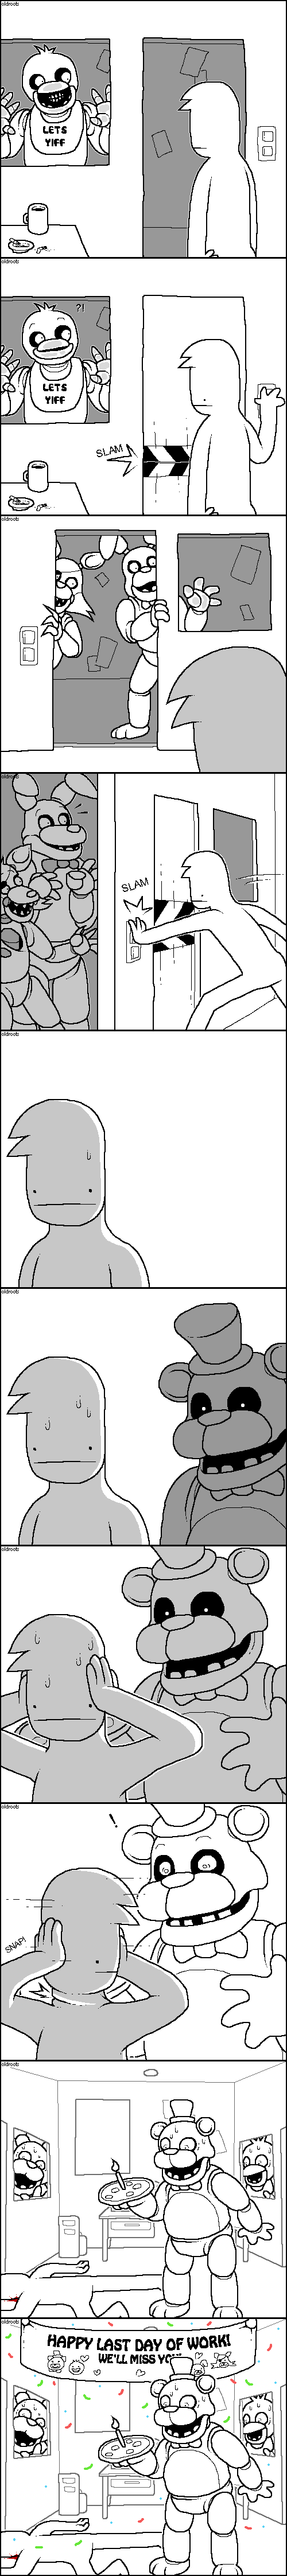 Awkward web comics five nights at freddy's - 8295176960